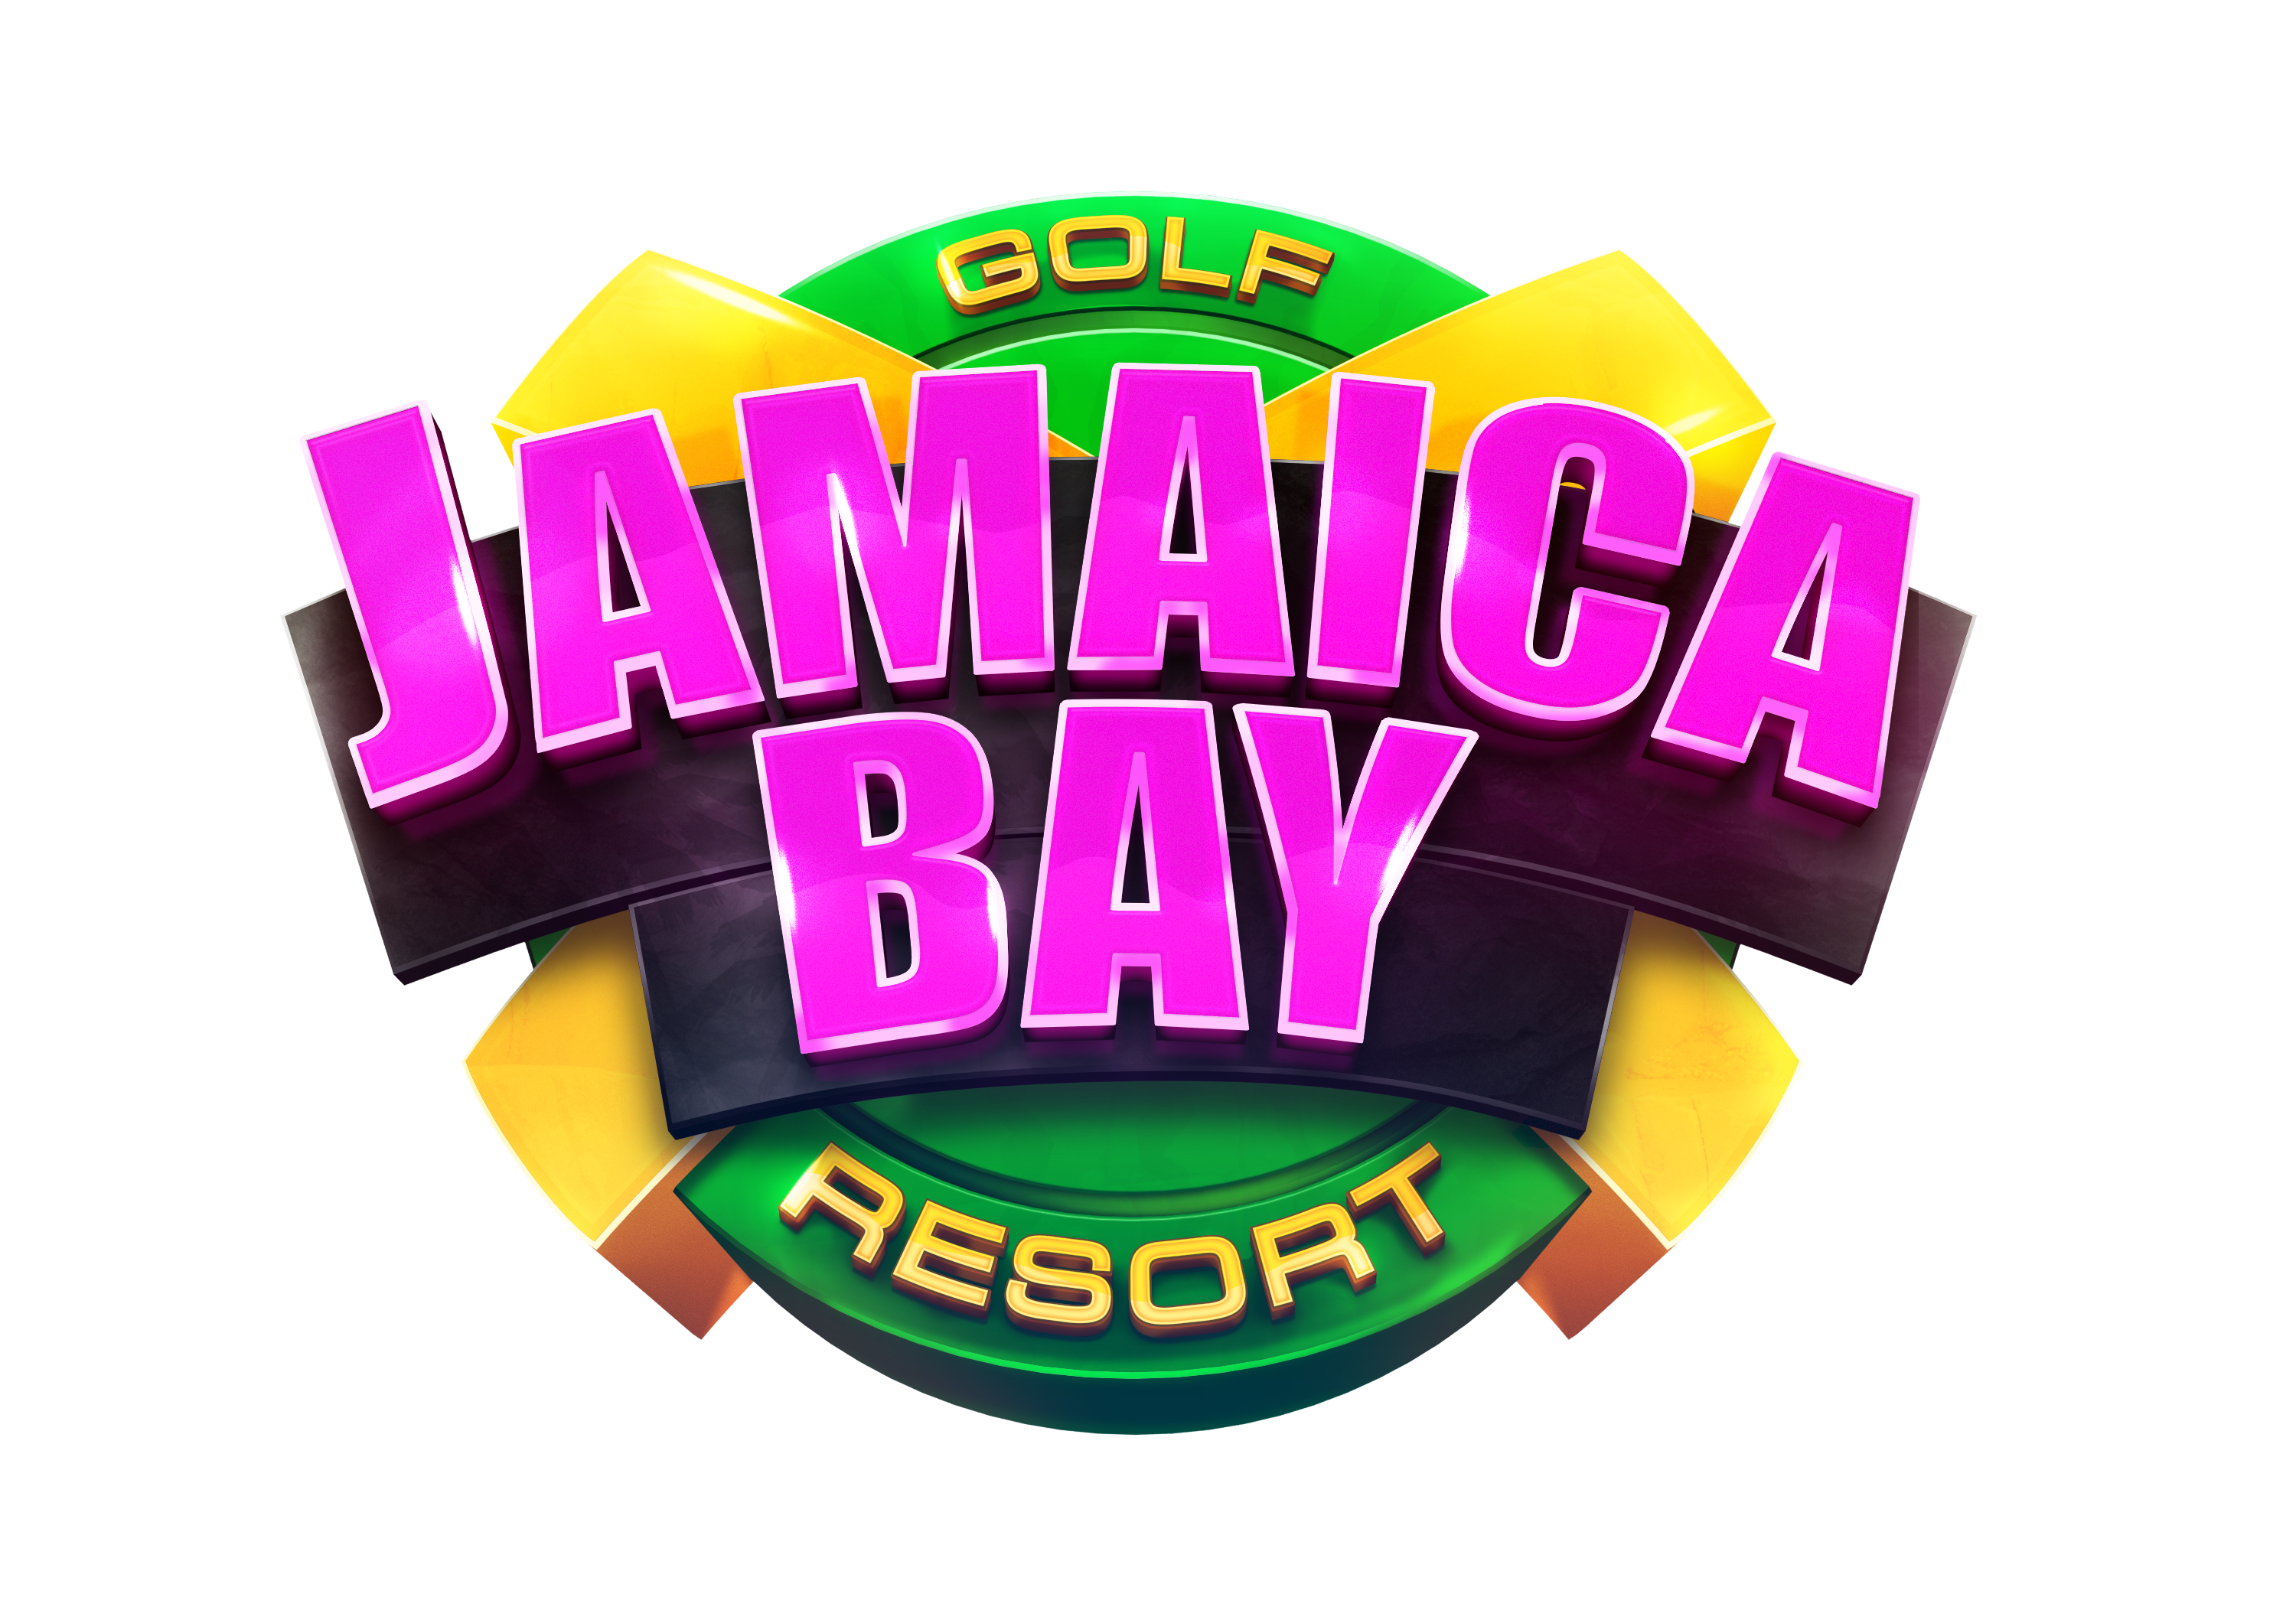 Jamaica Bay course logo